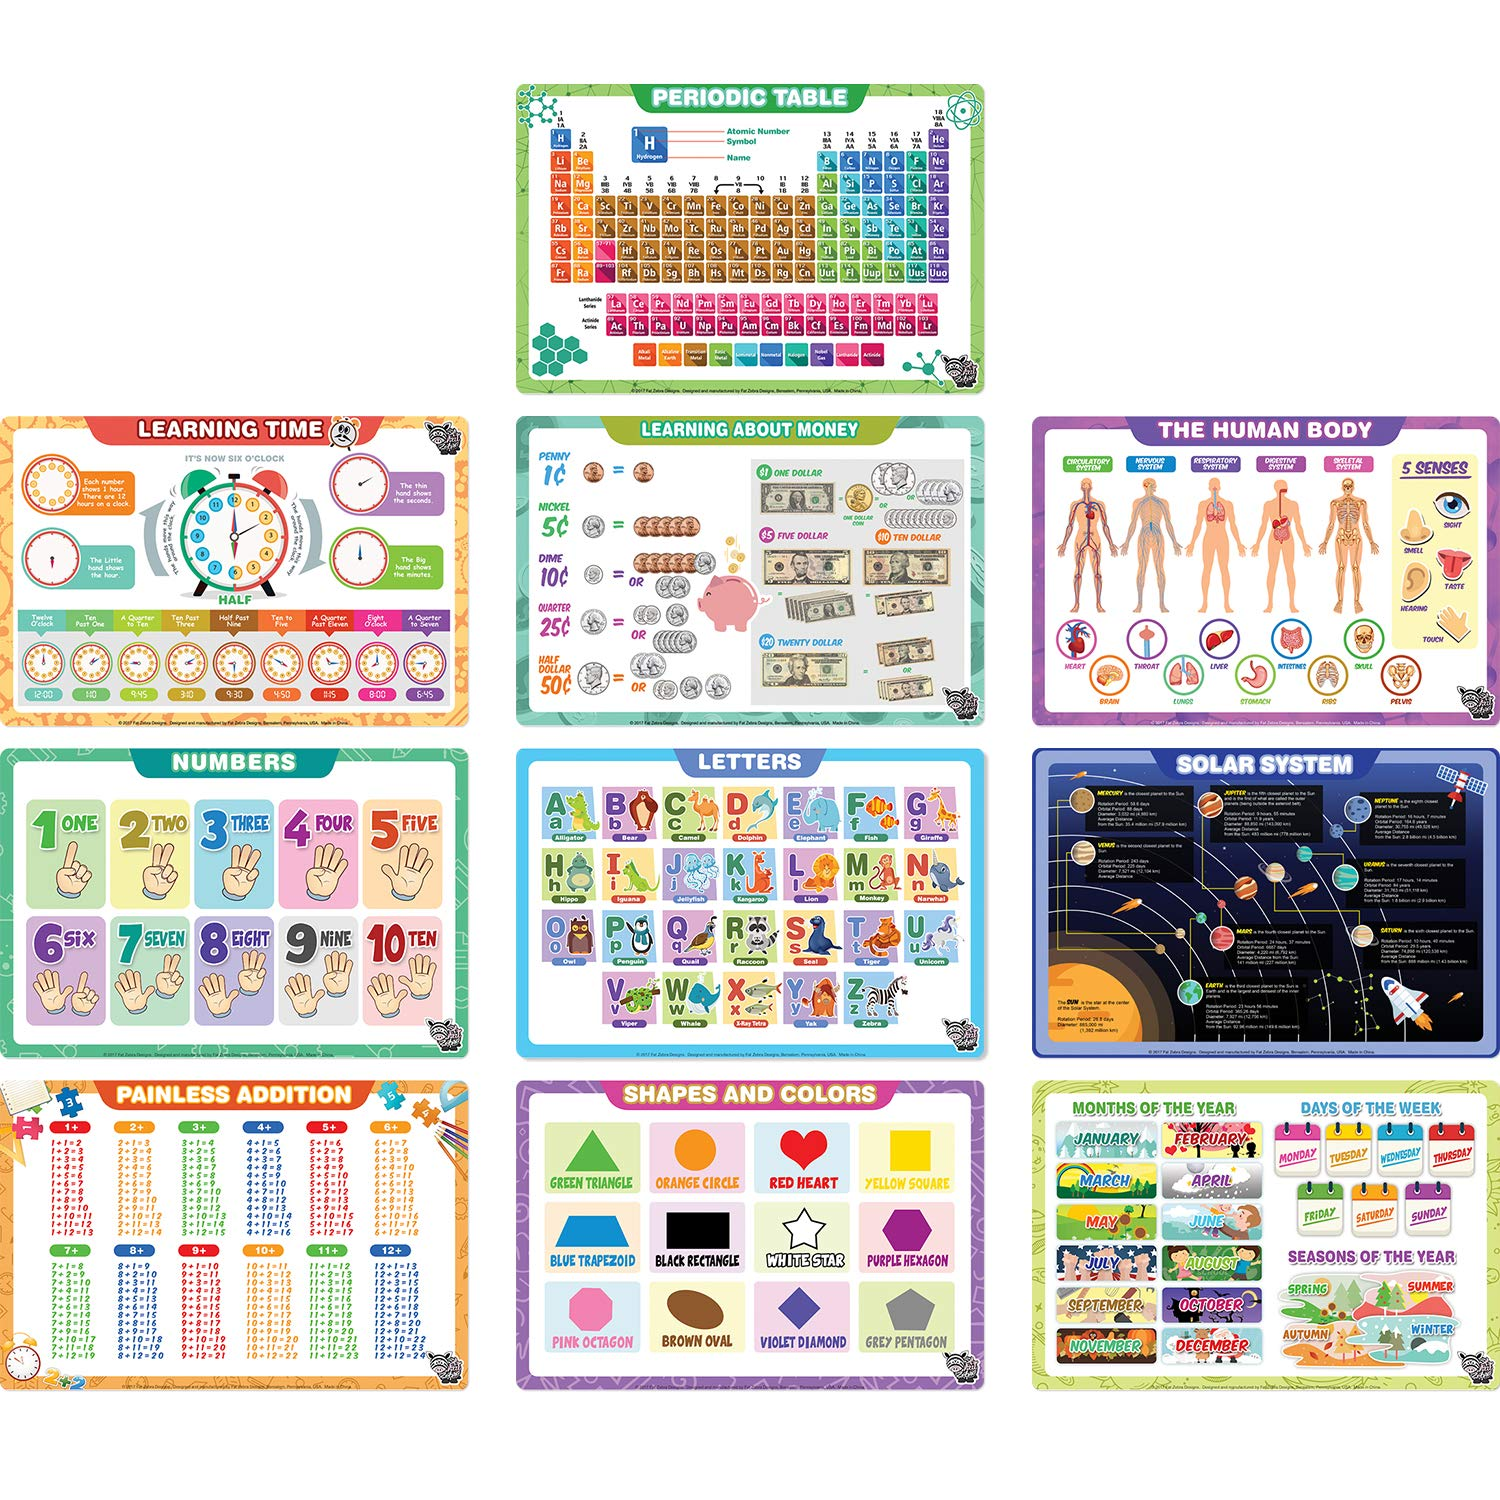 Educational Kids Placemats: Letters, Numbers, Shapes, Addition, Month/Days/Seasons, Human Body, Money, Solar System, Time, and Periodic Table - Easy Clean, Durable & Reusable Kids Table Mats (10 Pack) Fat Zebra Designs FZD-PM-03